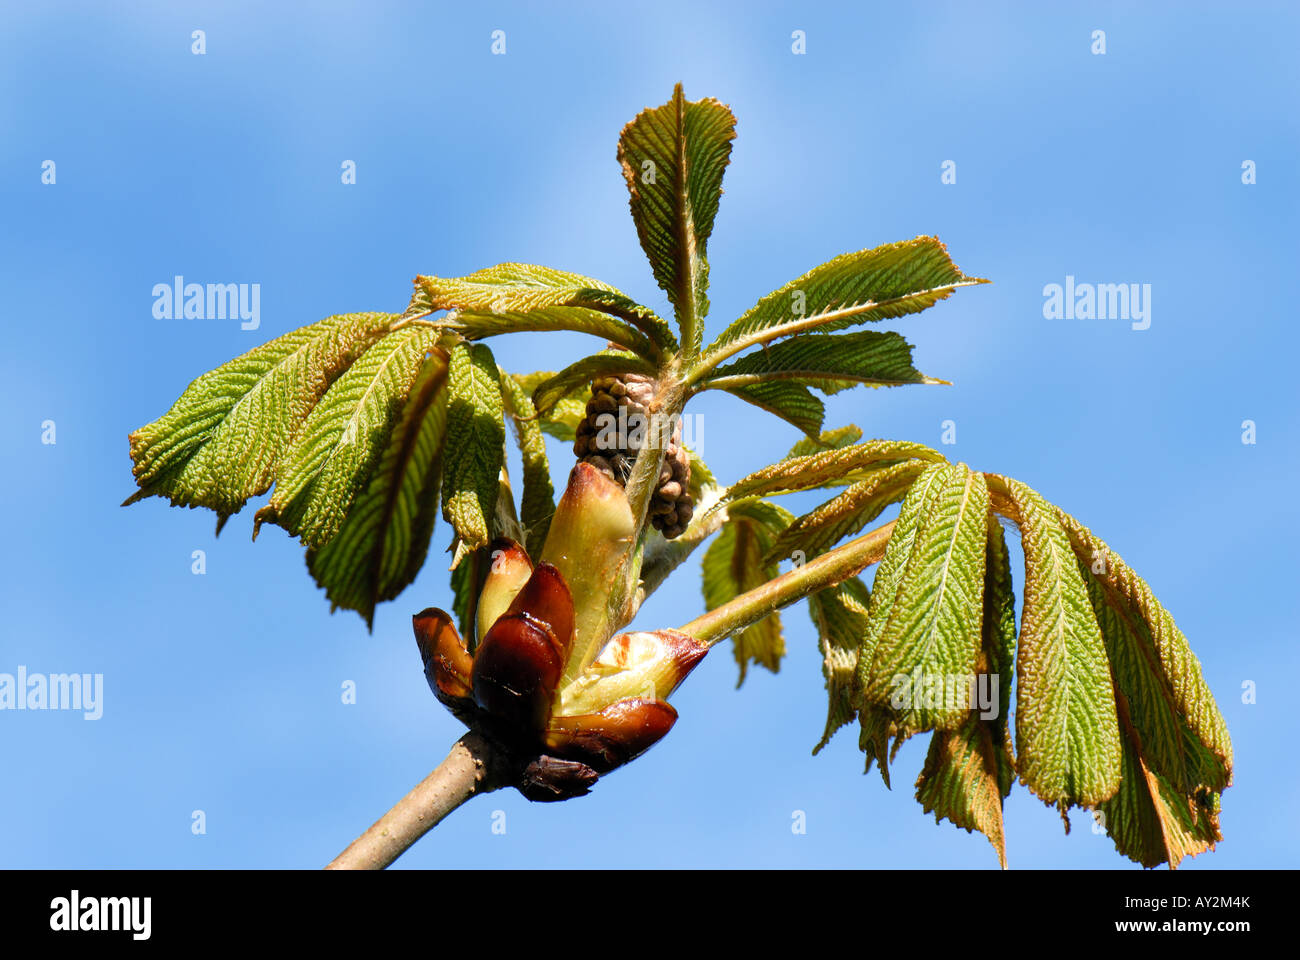 Horse chestnut Aesculus hippocastanum young leaves and tight flower bud against a blue spring sky - Stock Image